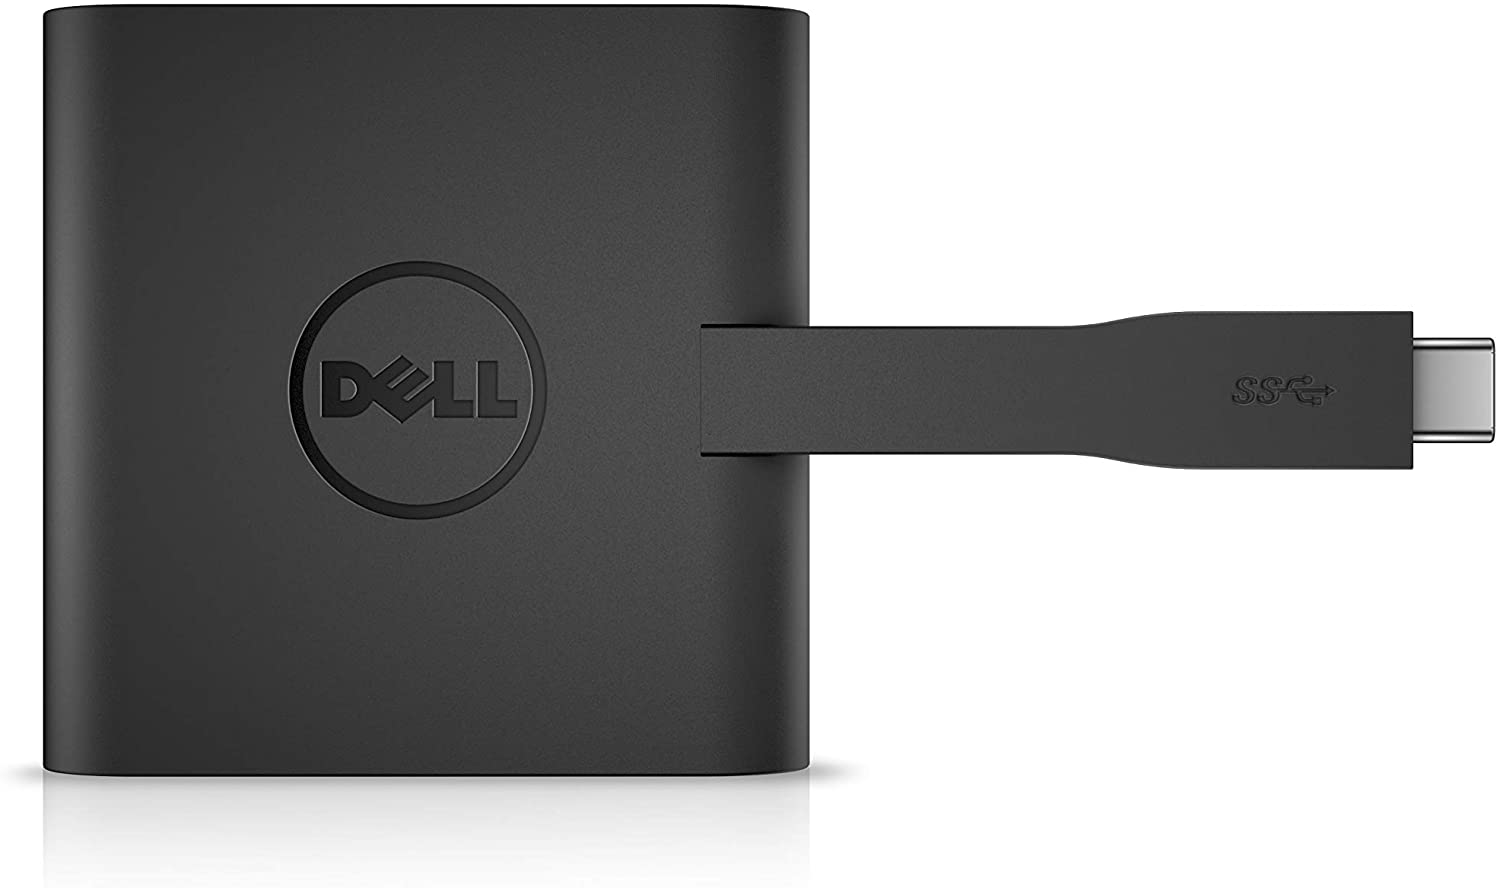 Dell adapter - USB-C to HDMI/Display port with power delivery